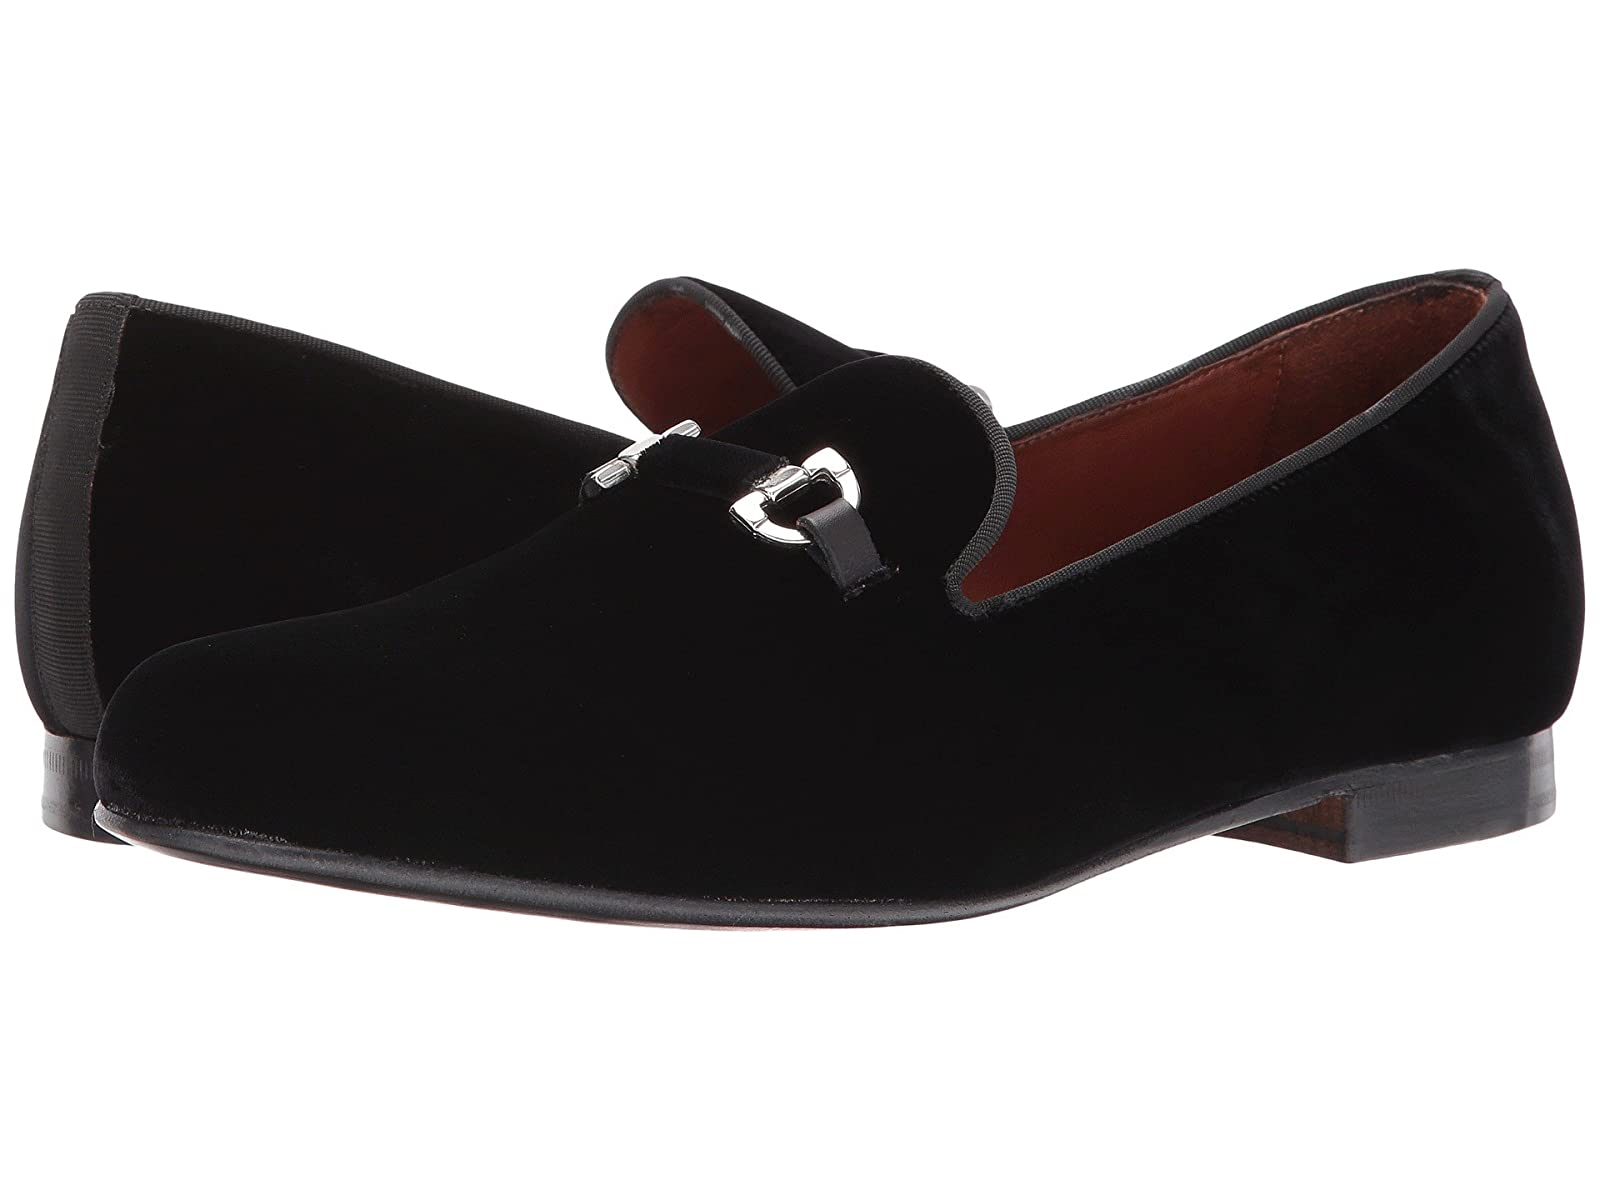 Massimo Matteo Velvet Slip-On with BitAtmospheric grades have affordable shoes